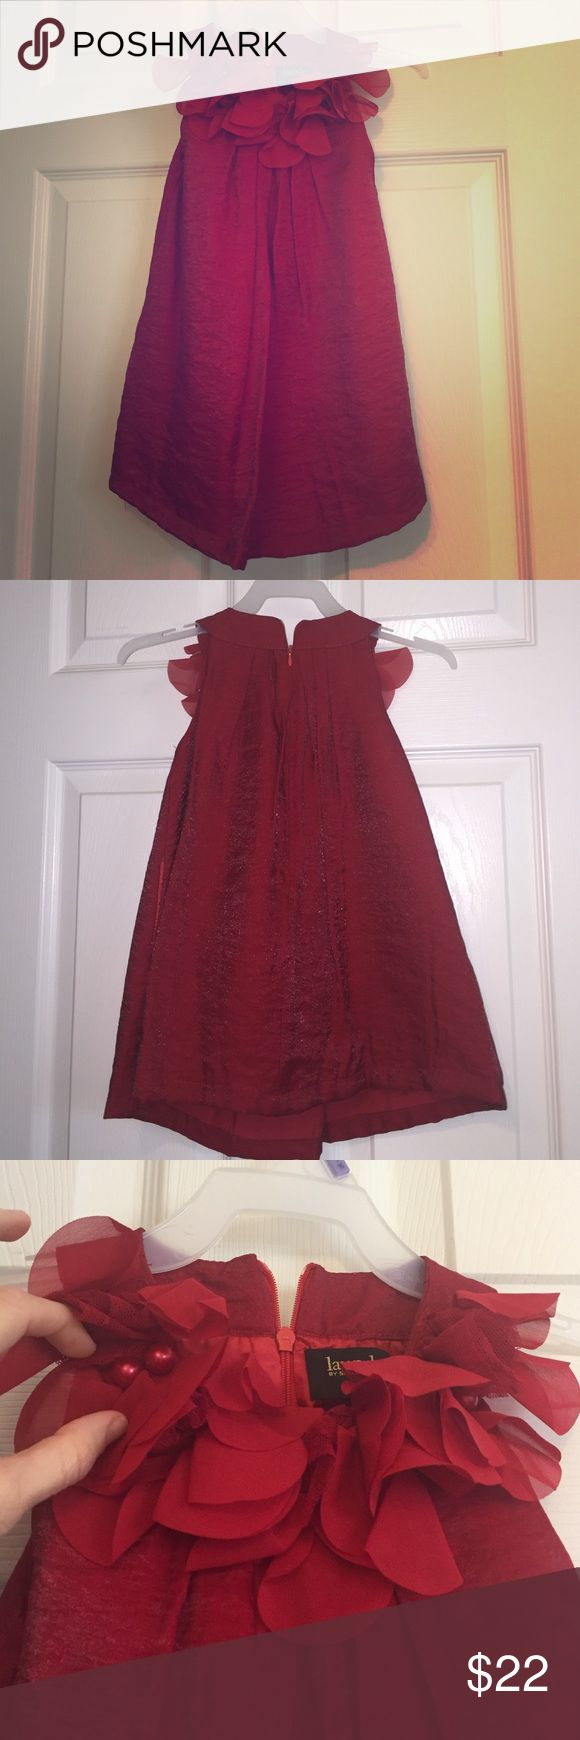 Festive Christmas/party dress for toddler girl! 🎄 Beautiful red girls holiday or formal dress. Light weight, silky feeling material, with a little bit of a sheen to it. Detail on top is soft, shear, with lace accent & a few beads. Bought in Nordstrom. Only worn for 2 hours. Laundry by Shelli Segal Dresses